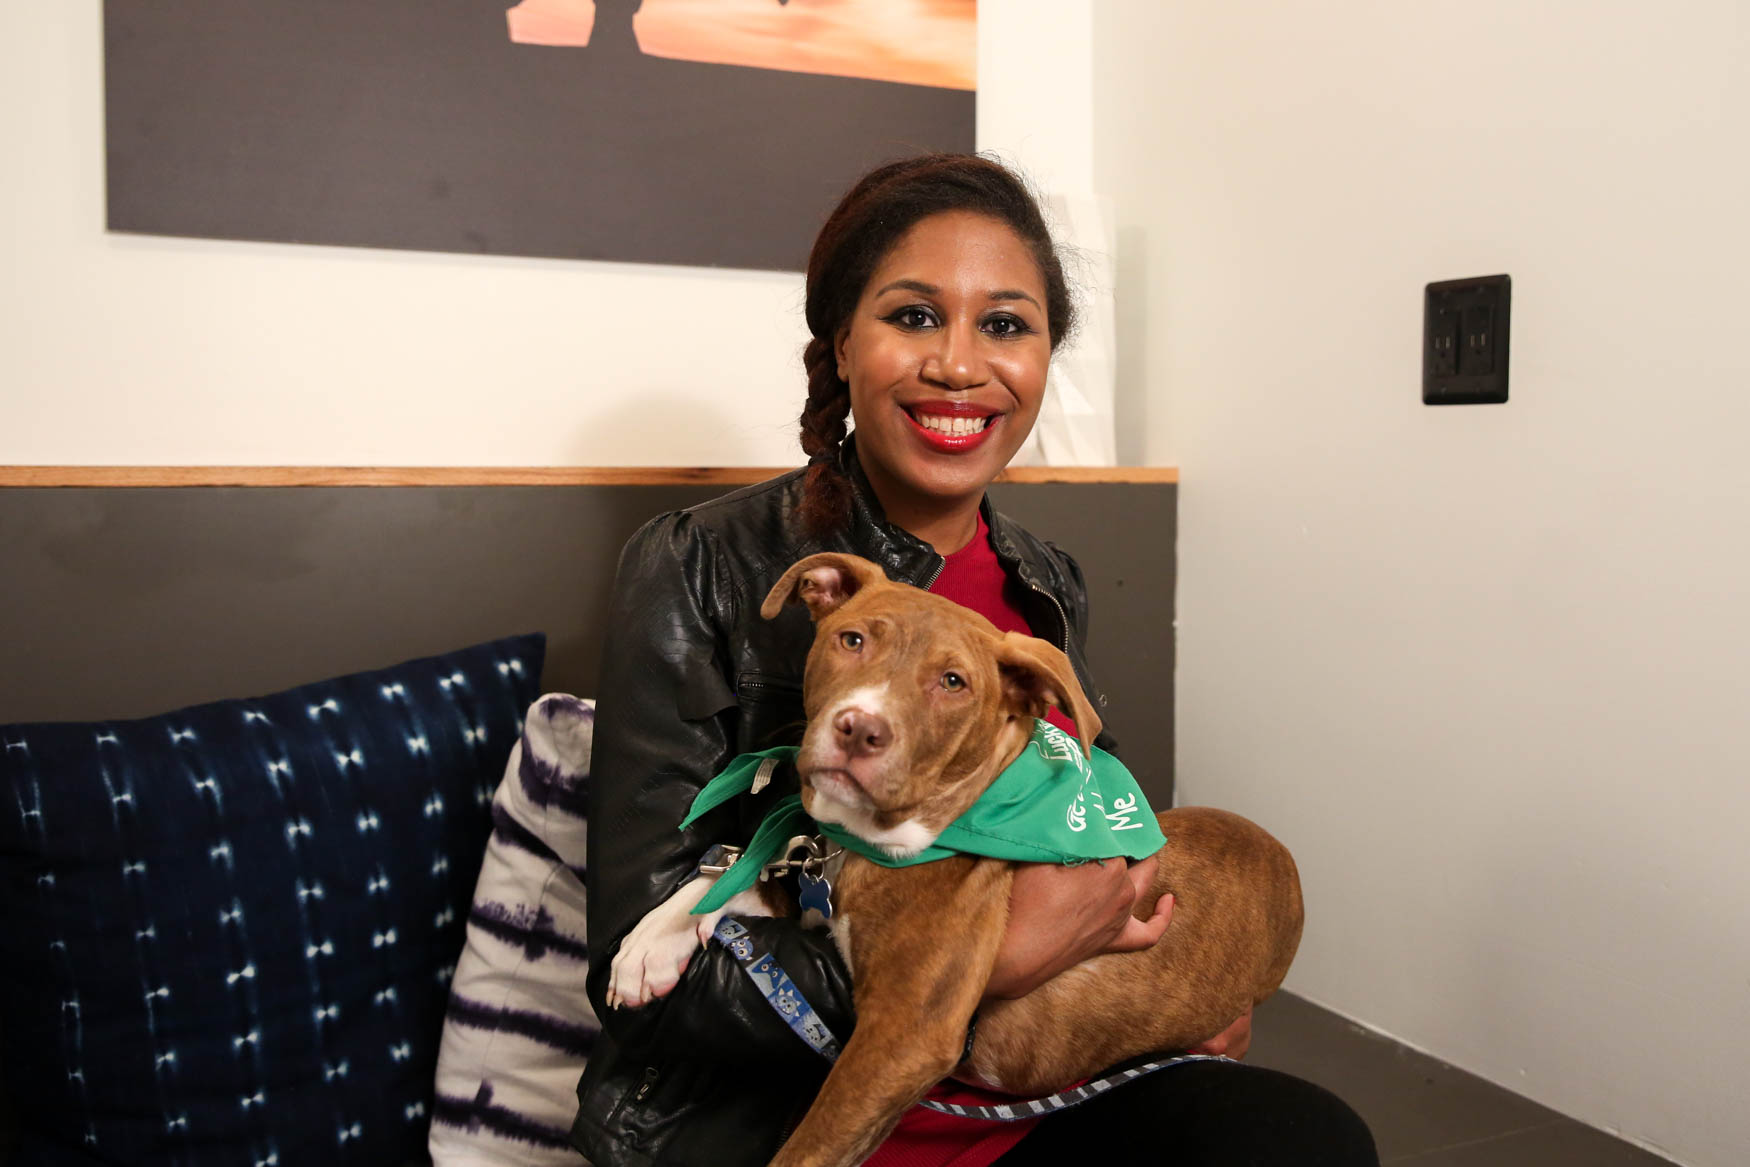 Meet Uncle and Stephanie, a 5-month-old Terrier mix and a 34-year-old human respectively. Photo location: Moxy Washington, D.C. Downtown (Image: Amanda Andrade-Rhoades/ DC Refined)